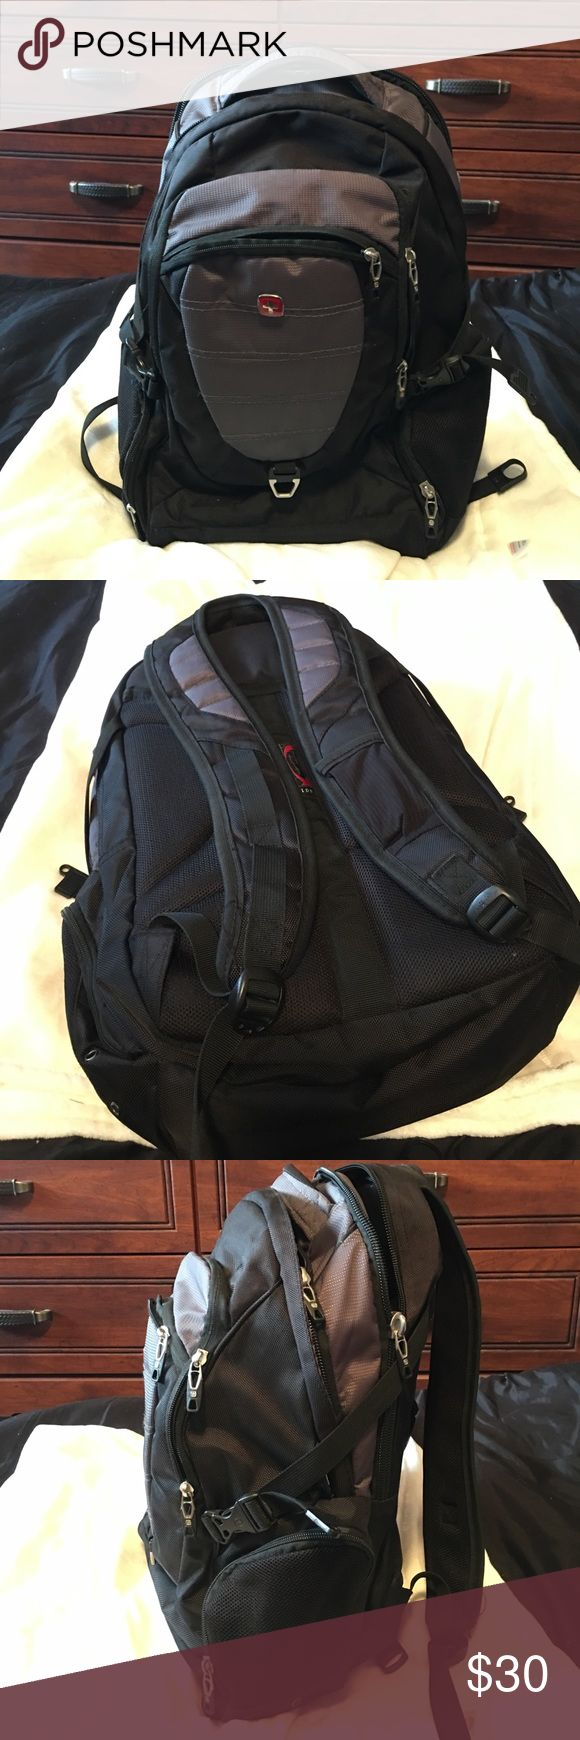 "Swiss Gear Laptop Backpack Black and grey multi-function backpack. Holds a 17"" laptop. Multiple pockets for lots of storage. There is a scratch on the logo embellishment on front of bag (shown in one of the pictures) but that's the only ""wear and tear"" on the entire bag. Great condition, used very minimally. SwissGear Bags Backpacks"